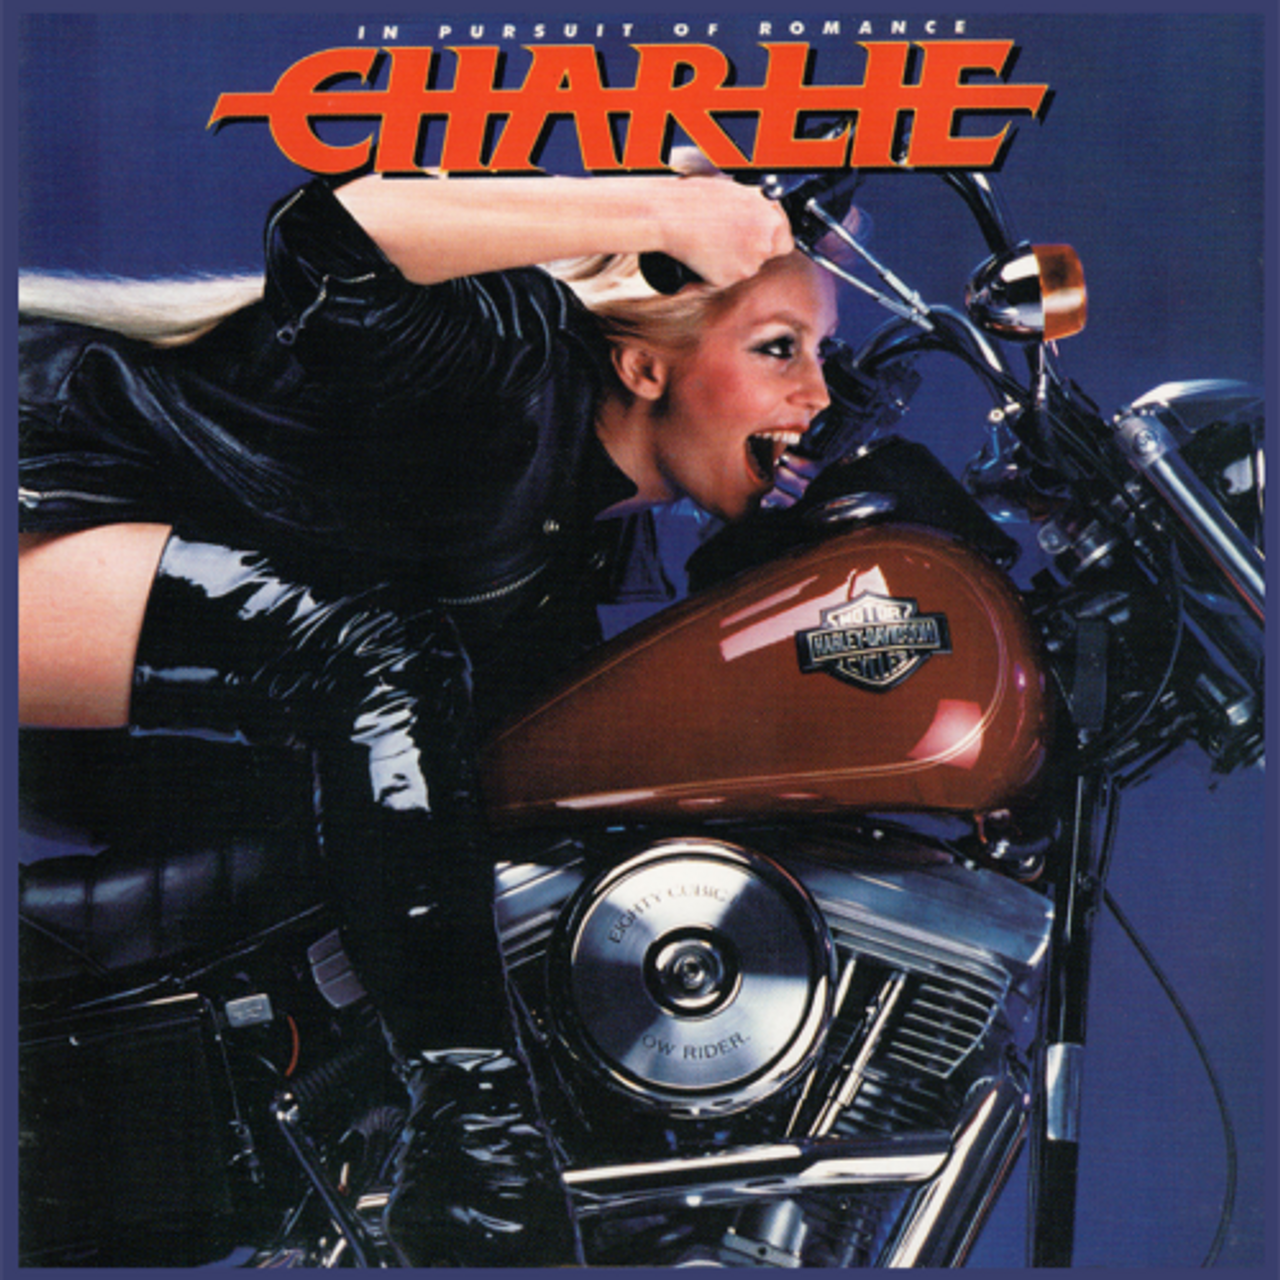 Charlie - In Pursuit Of Romance (CD)